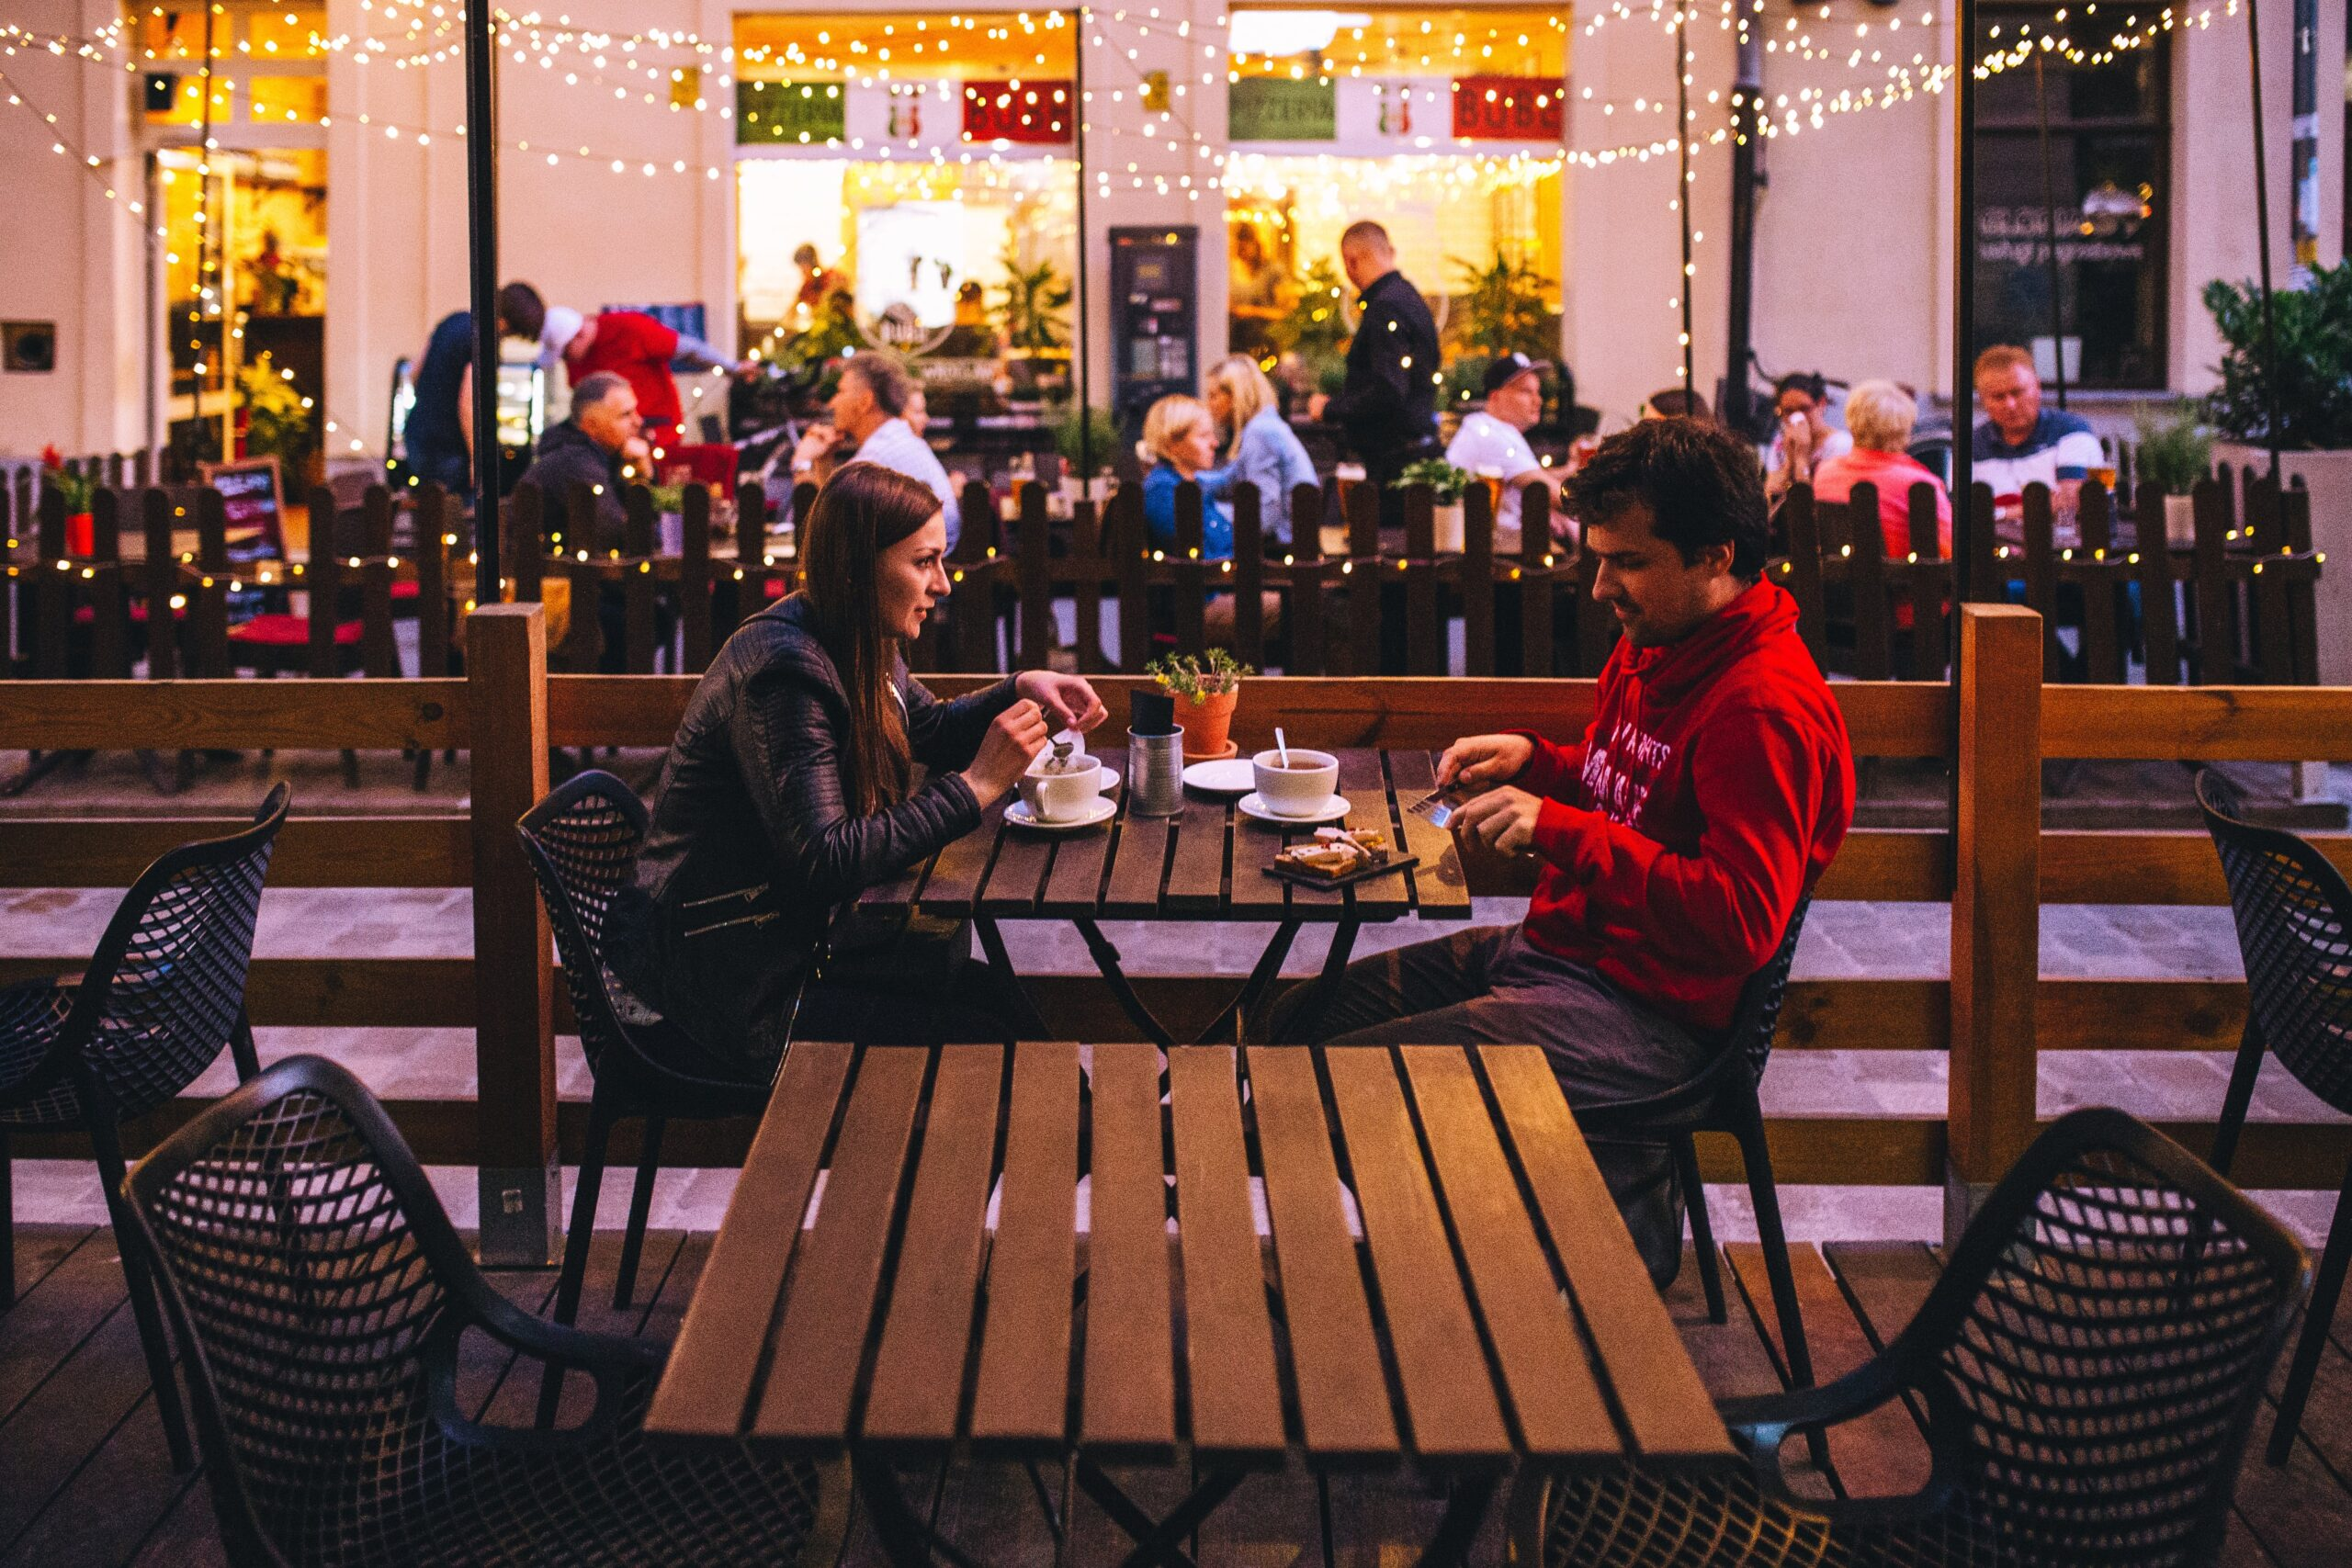 Effective First Date Tips to Make a Great Impression